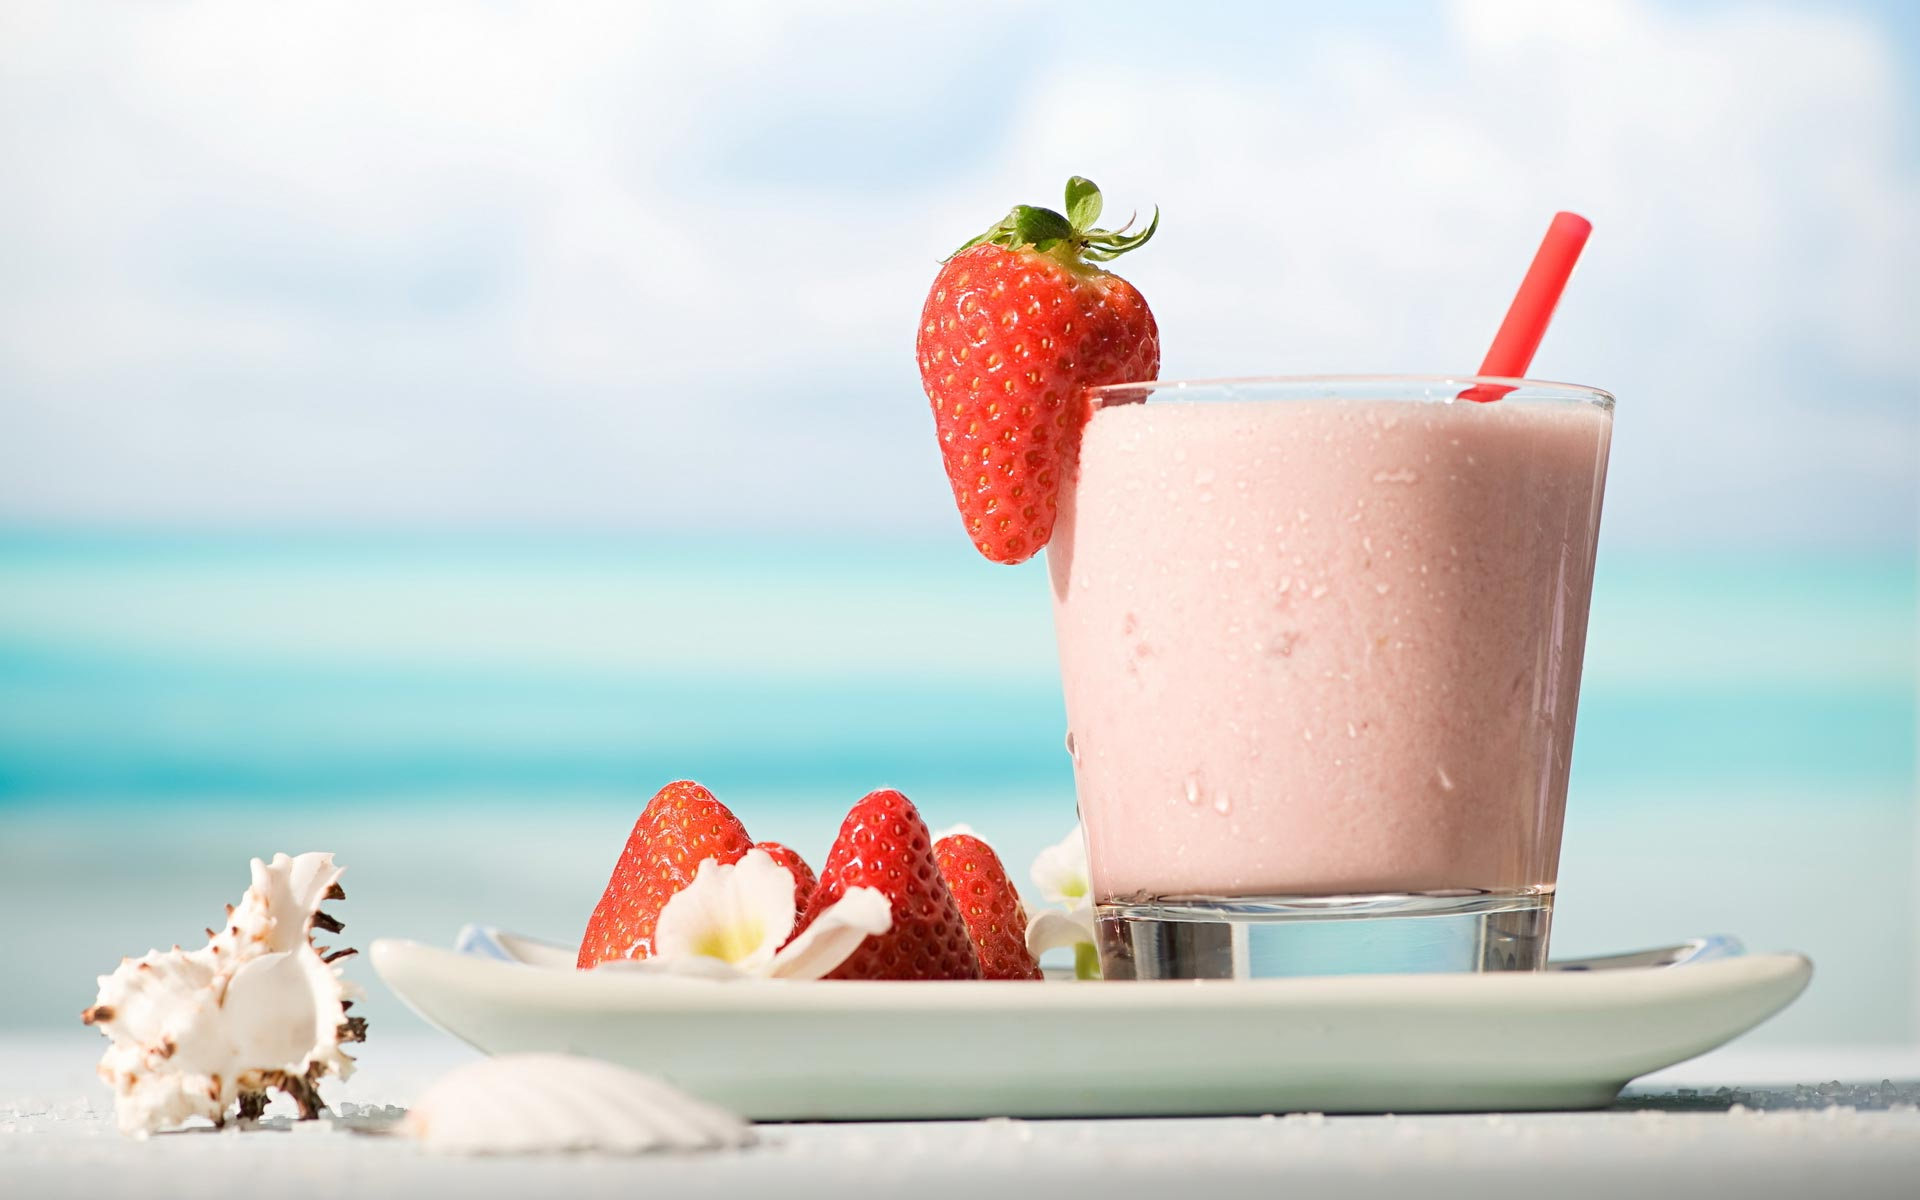 strawberry-yogurt-hd-widescreen-hd-free-wallpaper